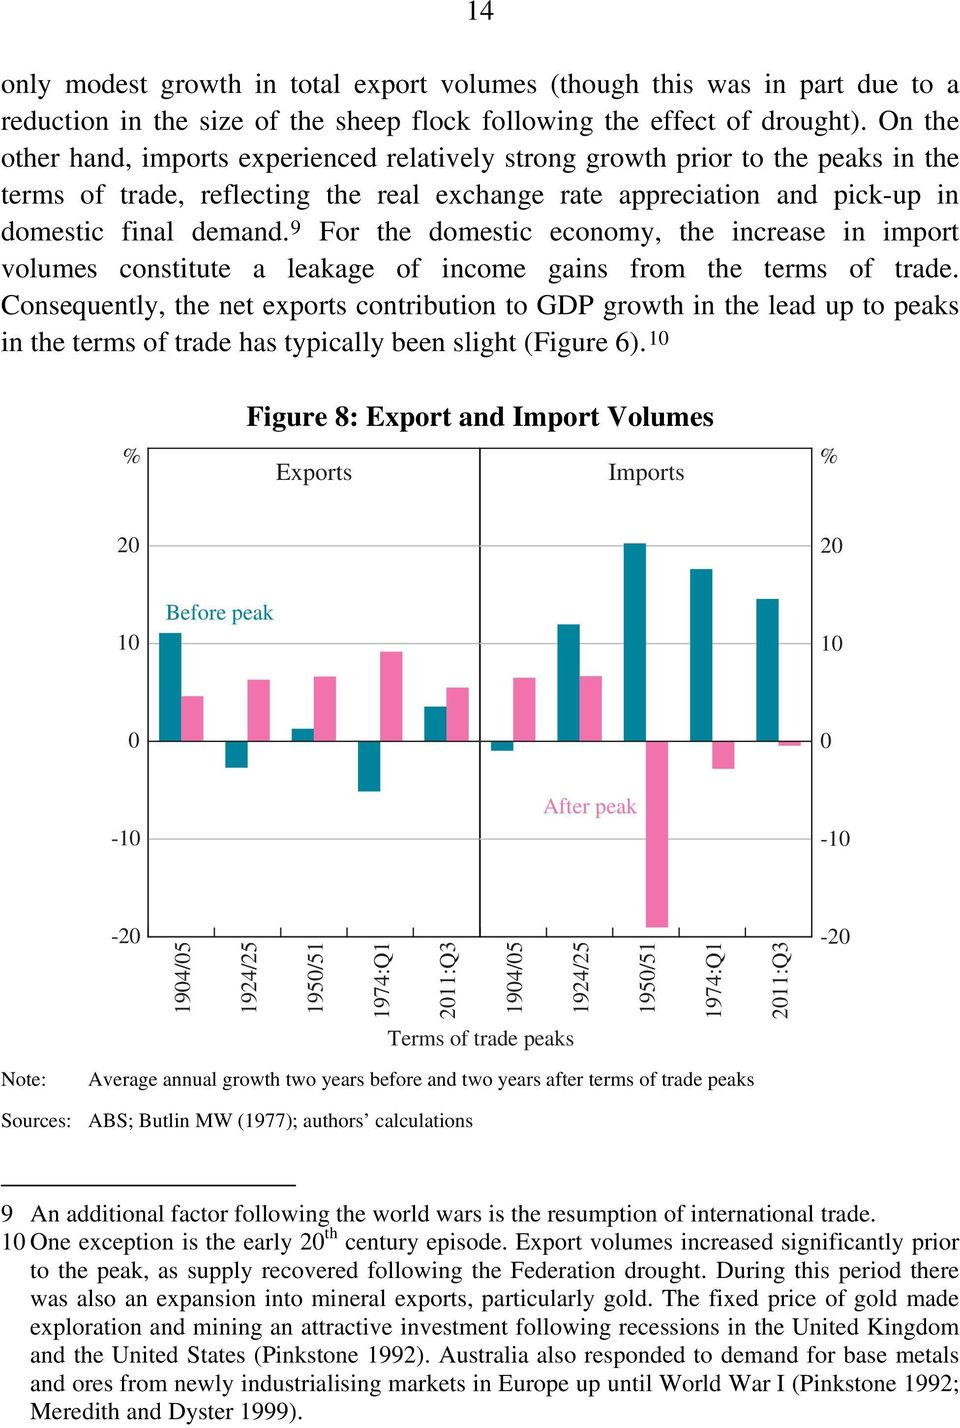 9 For the domestic economy, the increase in import volumes constitute a leakage of income gains from the terms of trade.